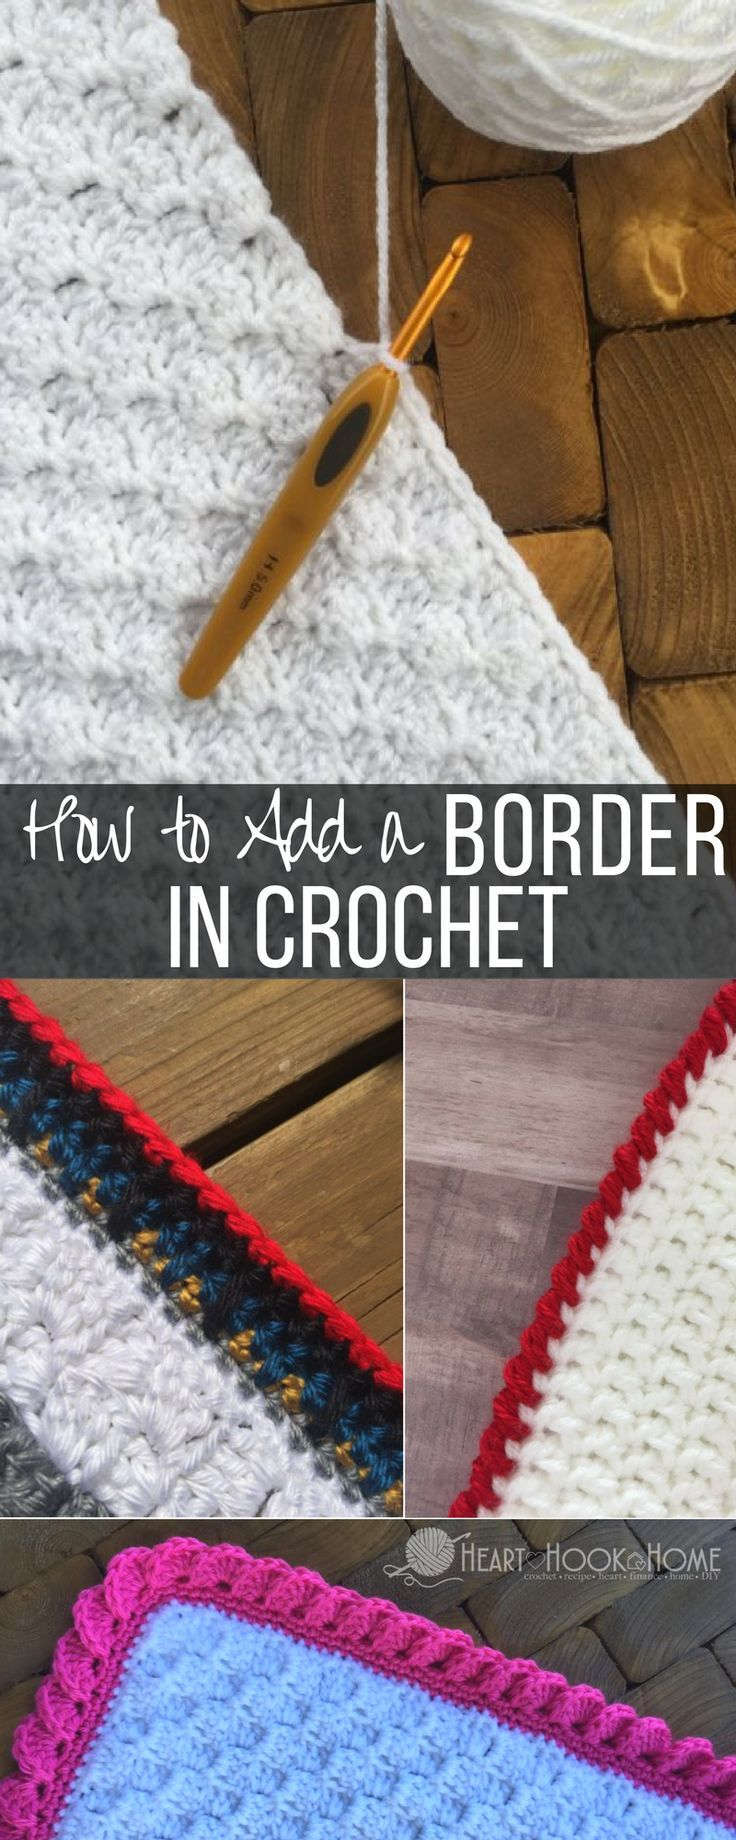 This One Trick Will Change Your Crocheted Border Heklanje I štrikanje